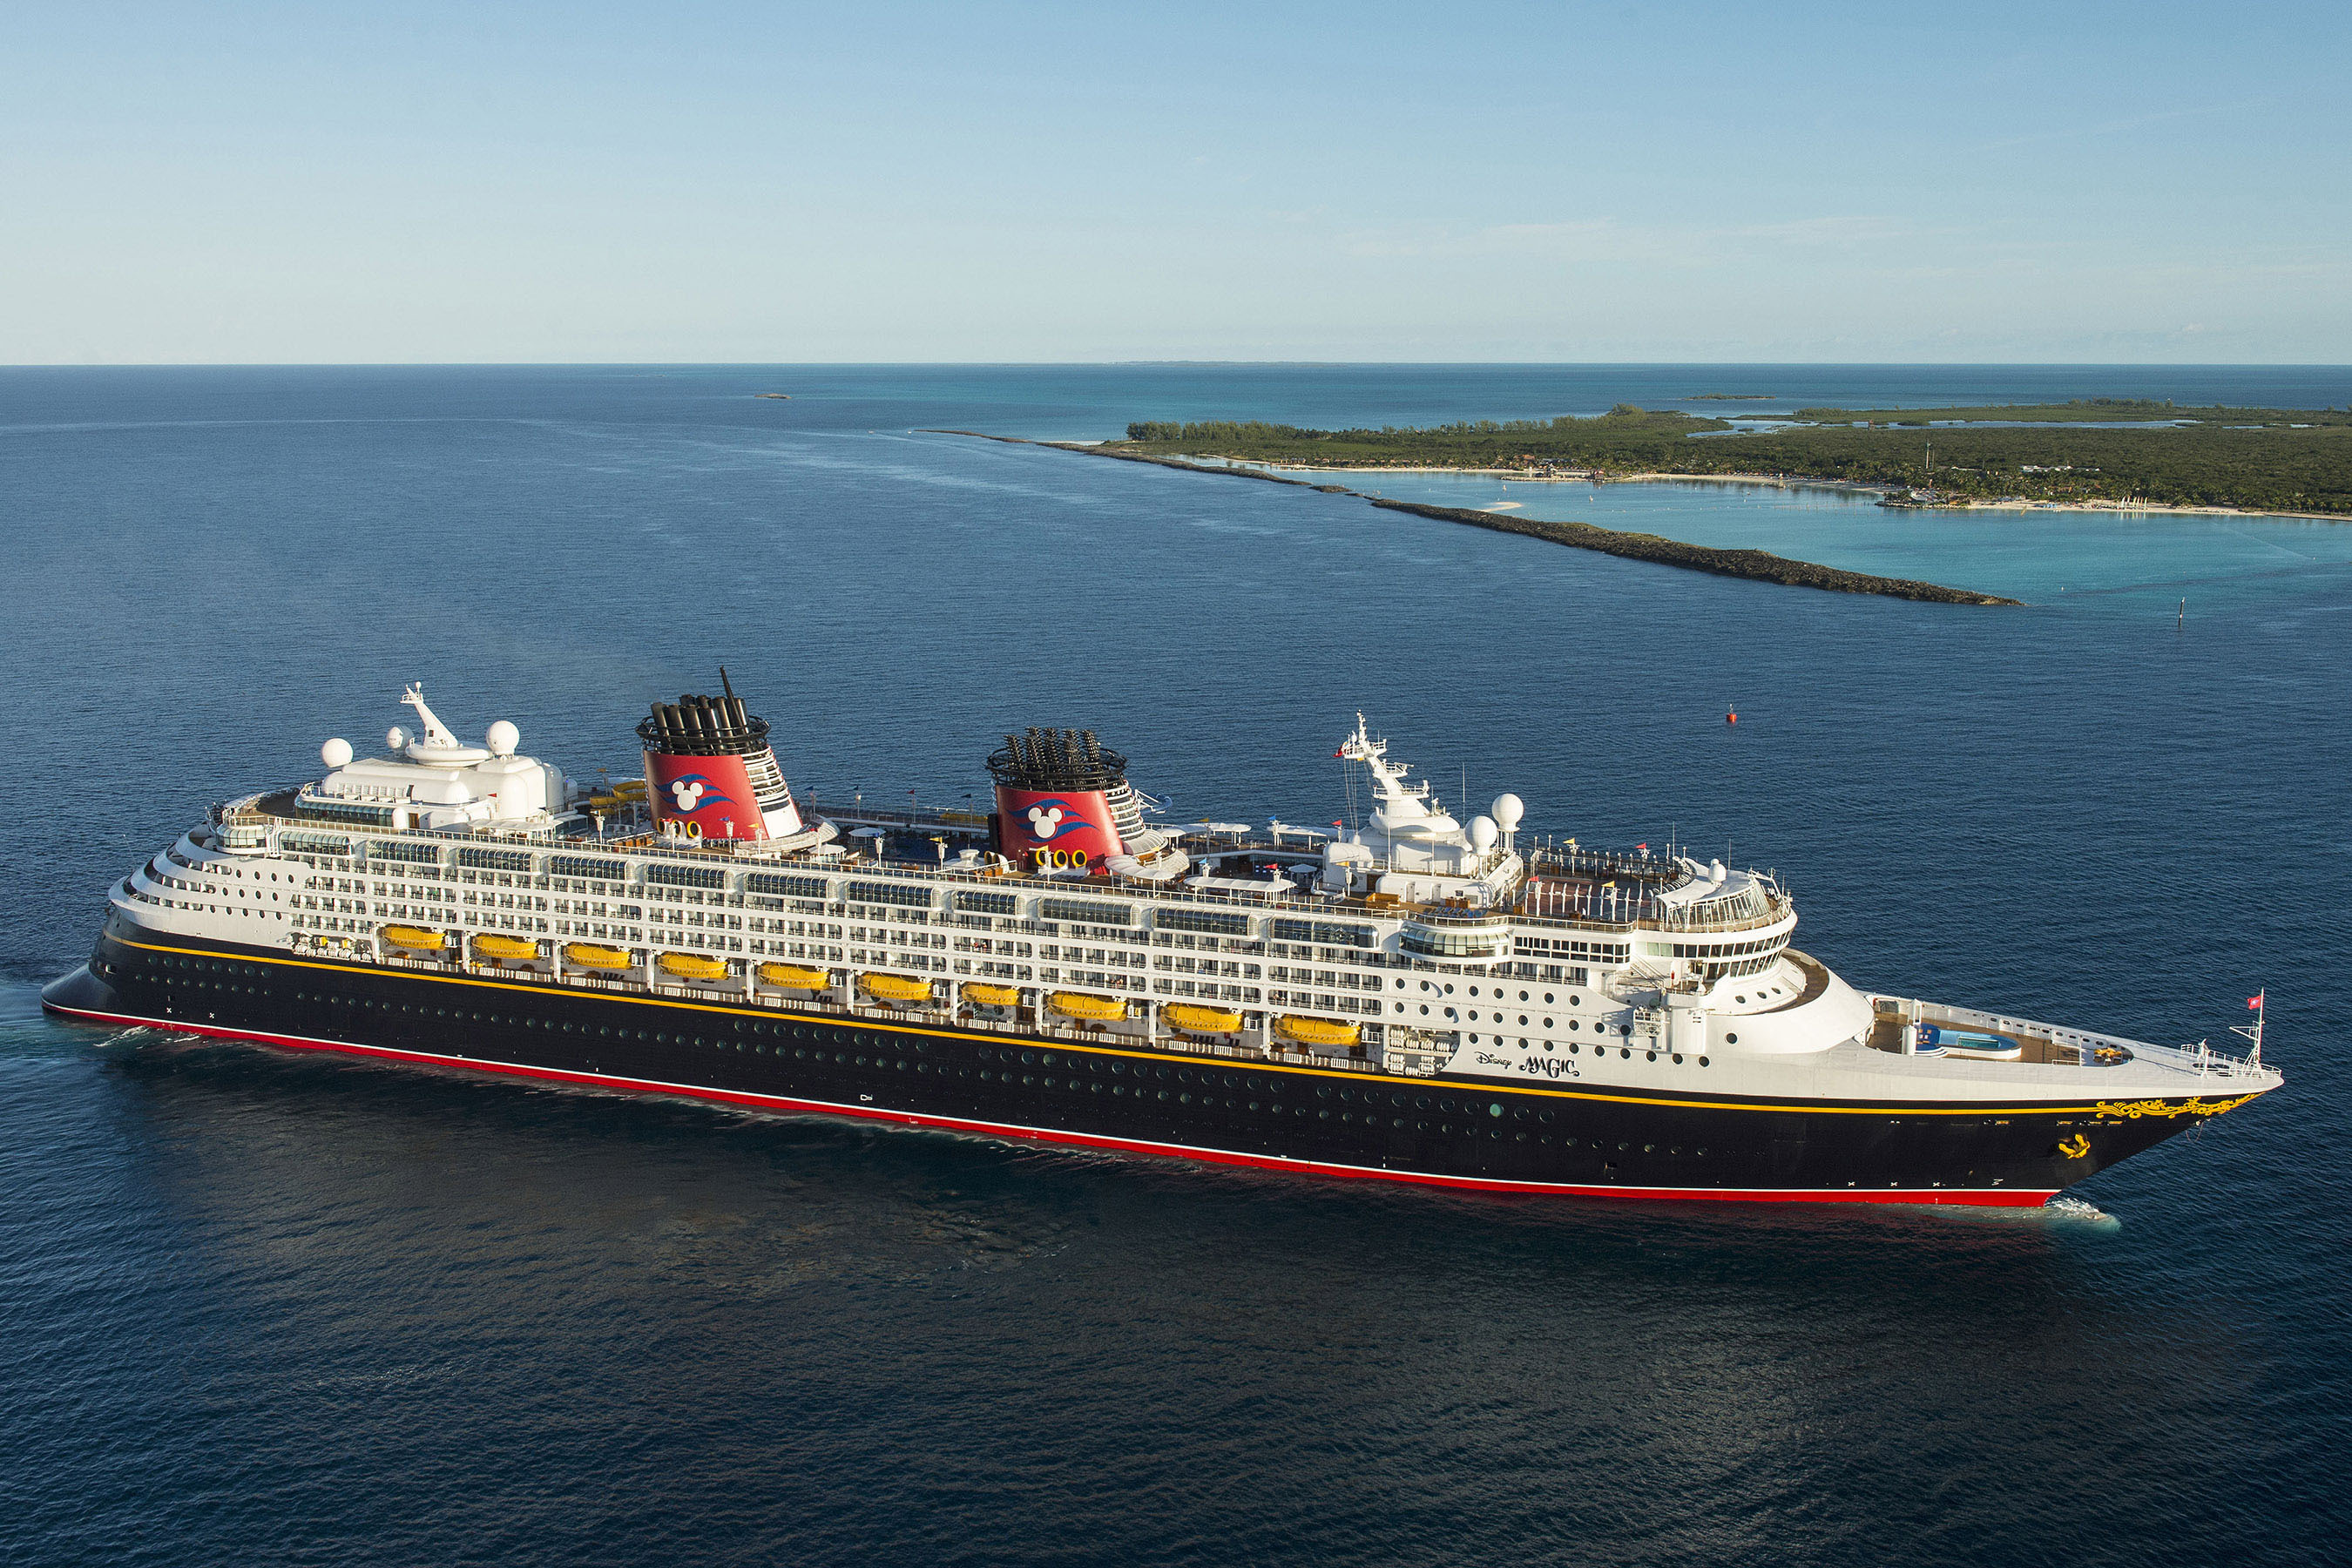 Disney Cruise Line's awesome 2020 lineup